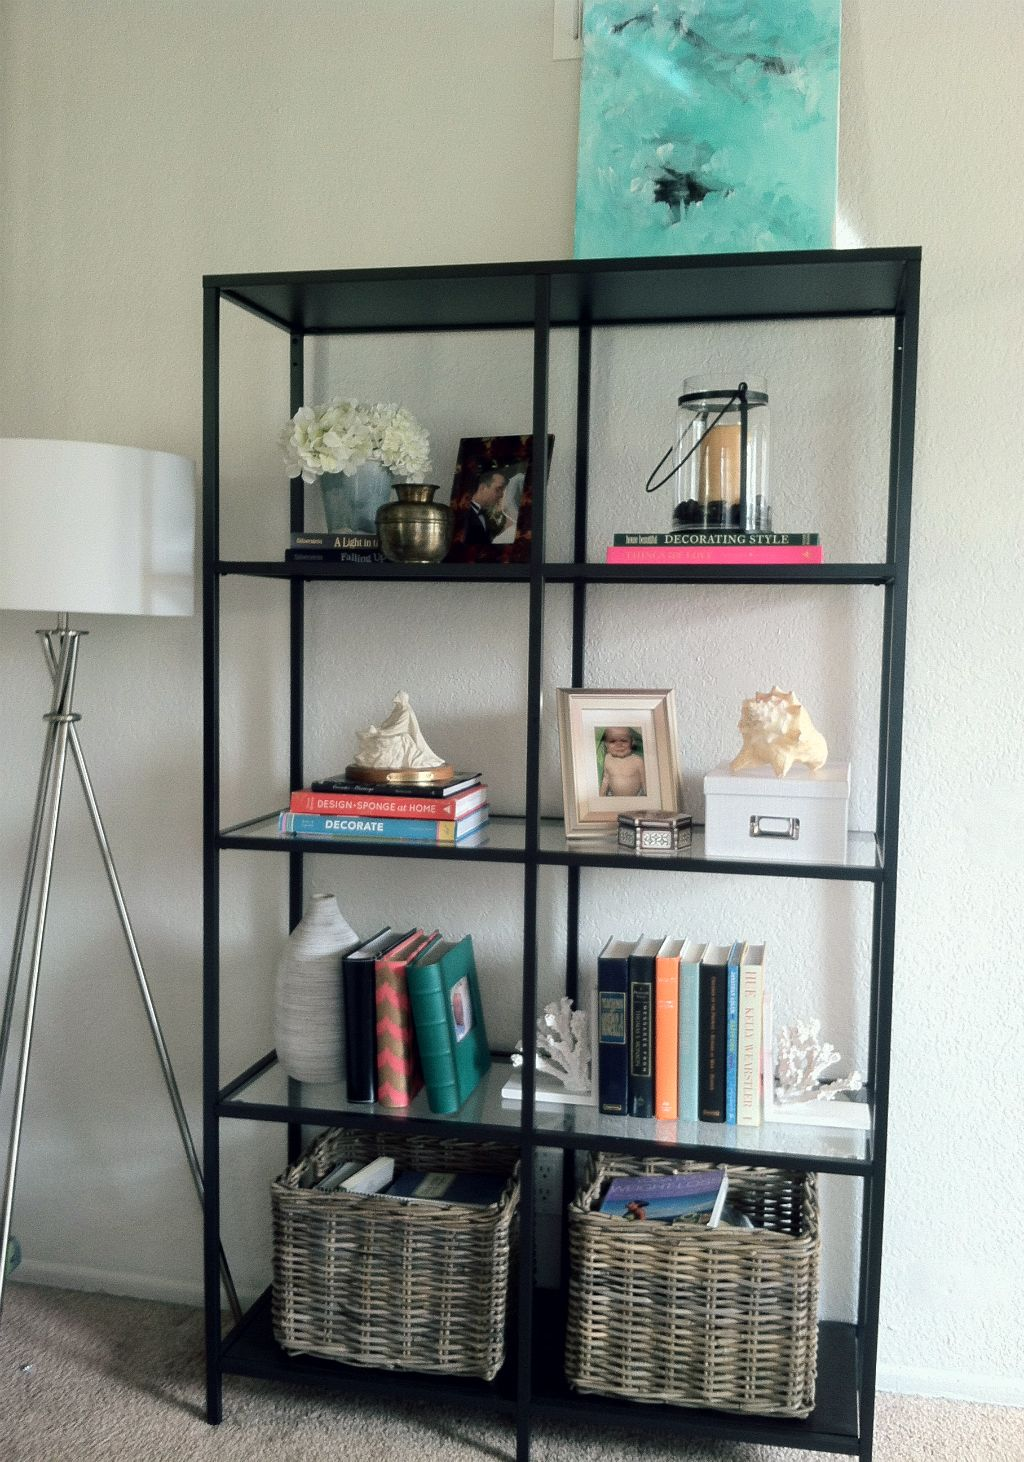 Ikea Vittsjo Bookcase In The Living Room Storage Without A Heavy Look Financial Freedom